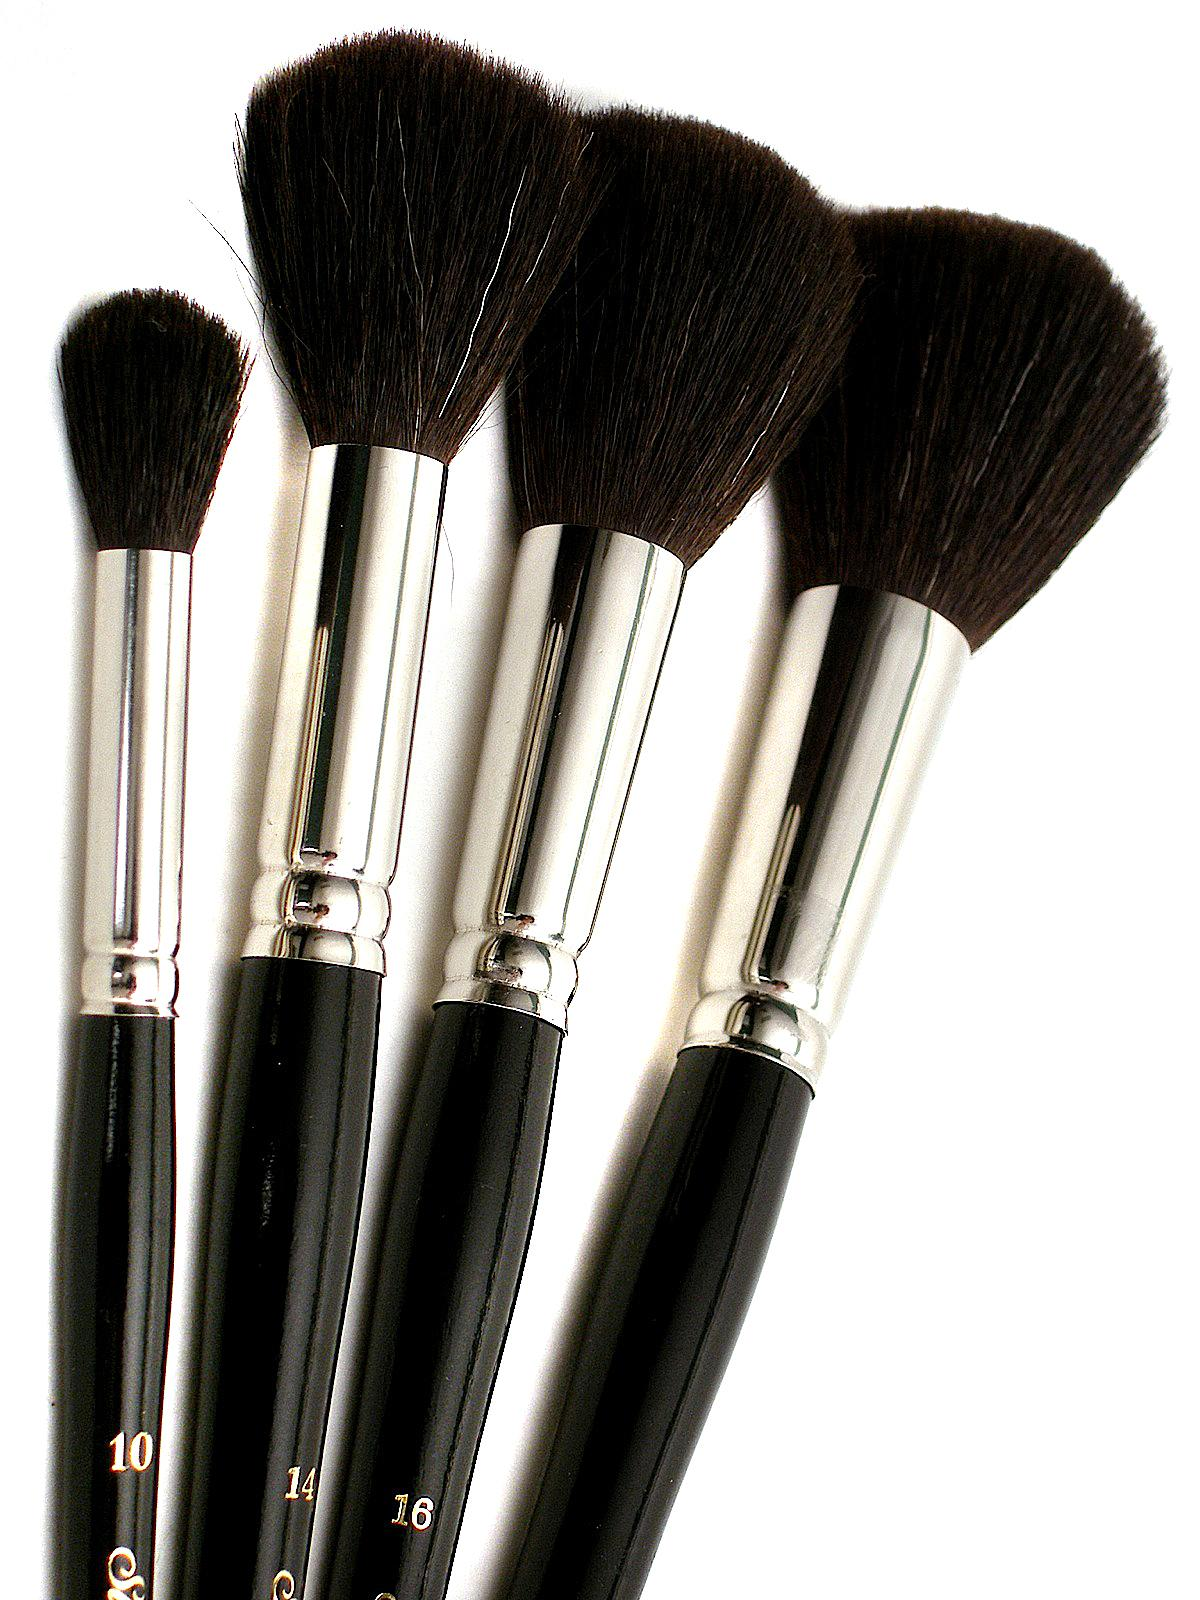 Black Round/Oval Mop Brushes